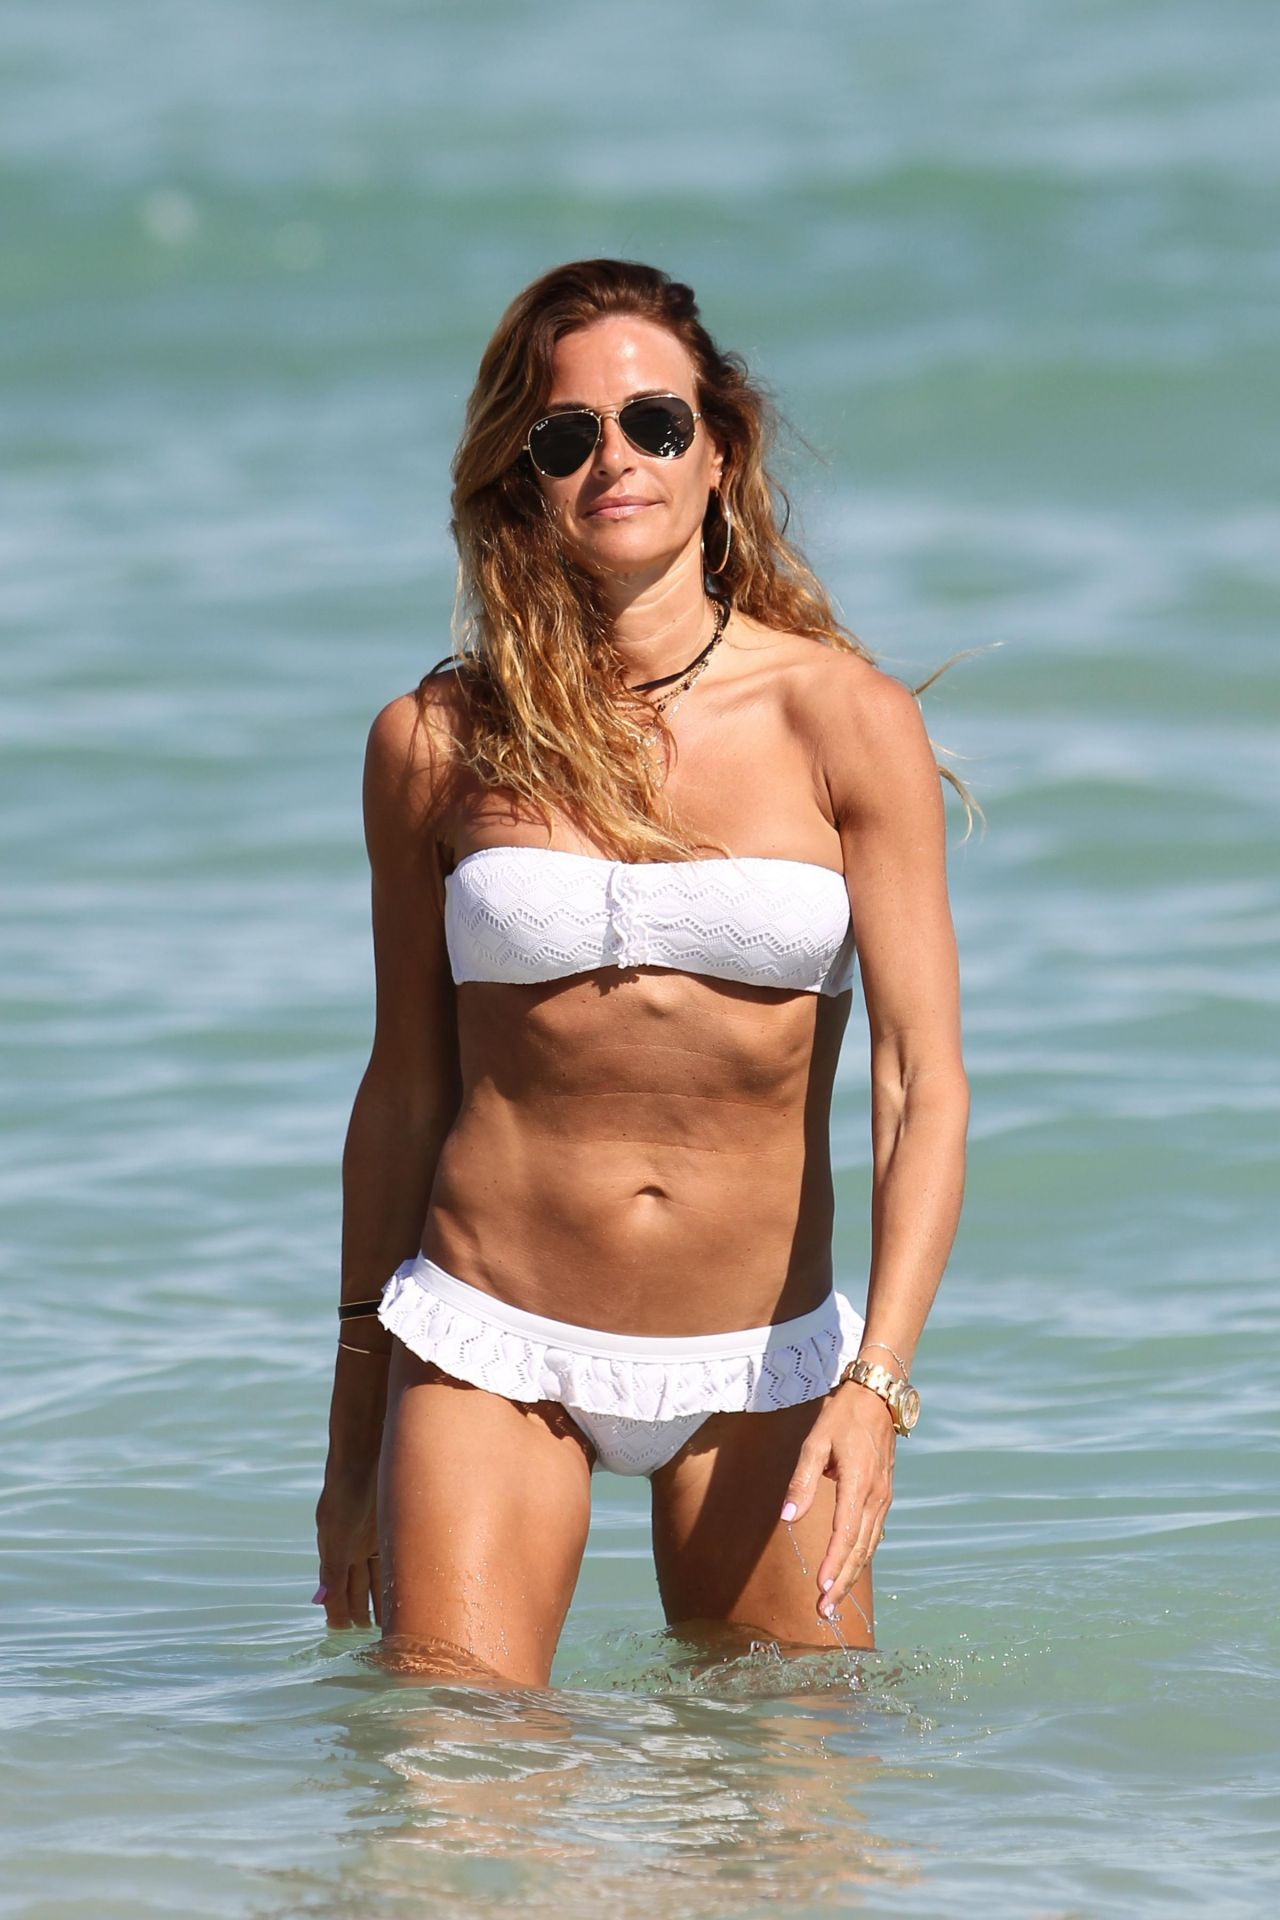 Kelly Bensimon in White Bikini in Miami Pic 11 of 35